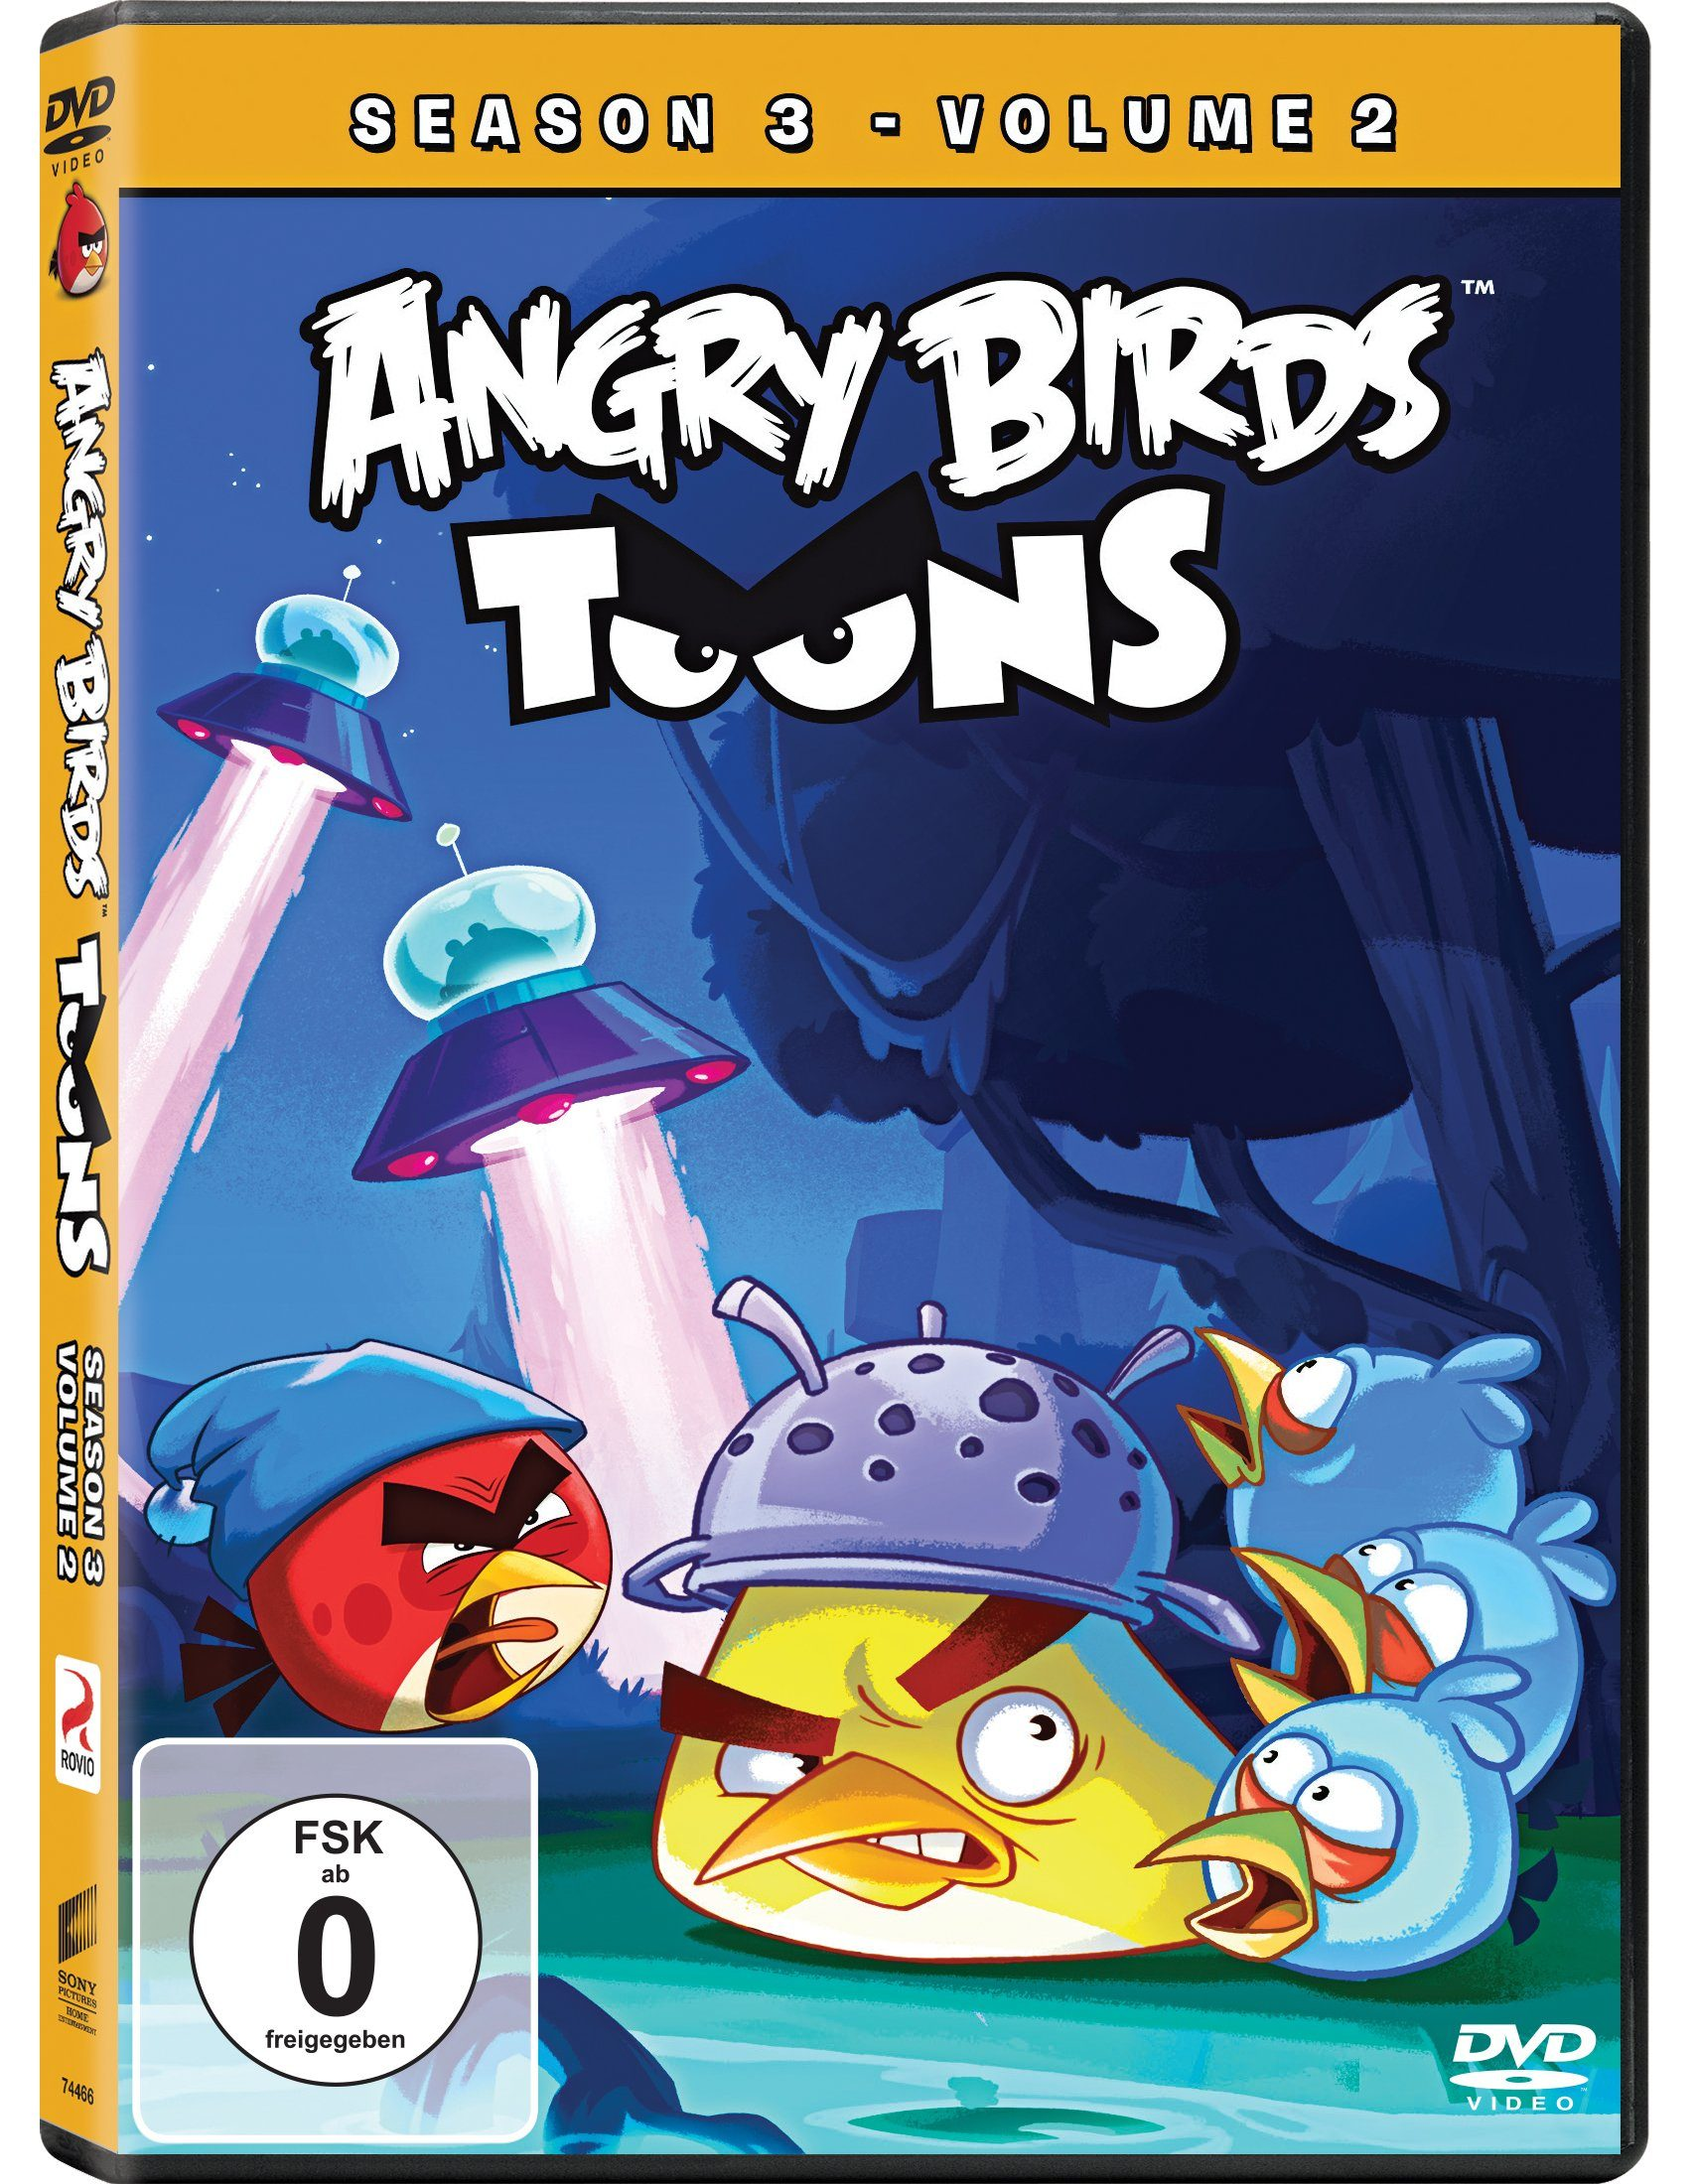 Sony Pictures DVD »Angry Birds Toons - Season 3 - Volume 2«